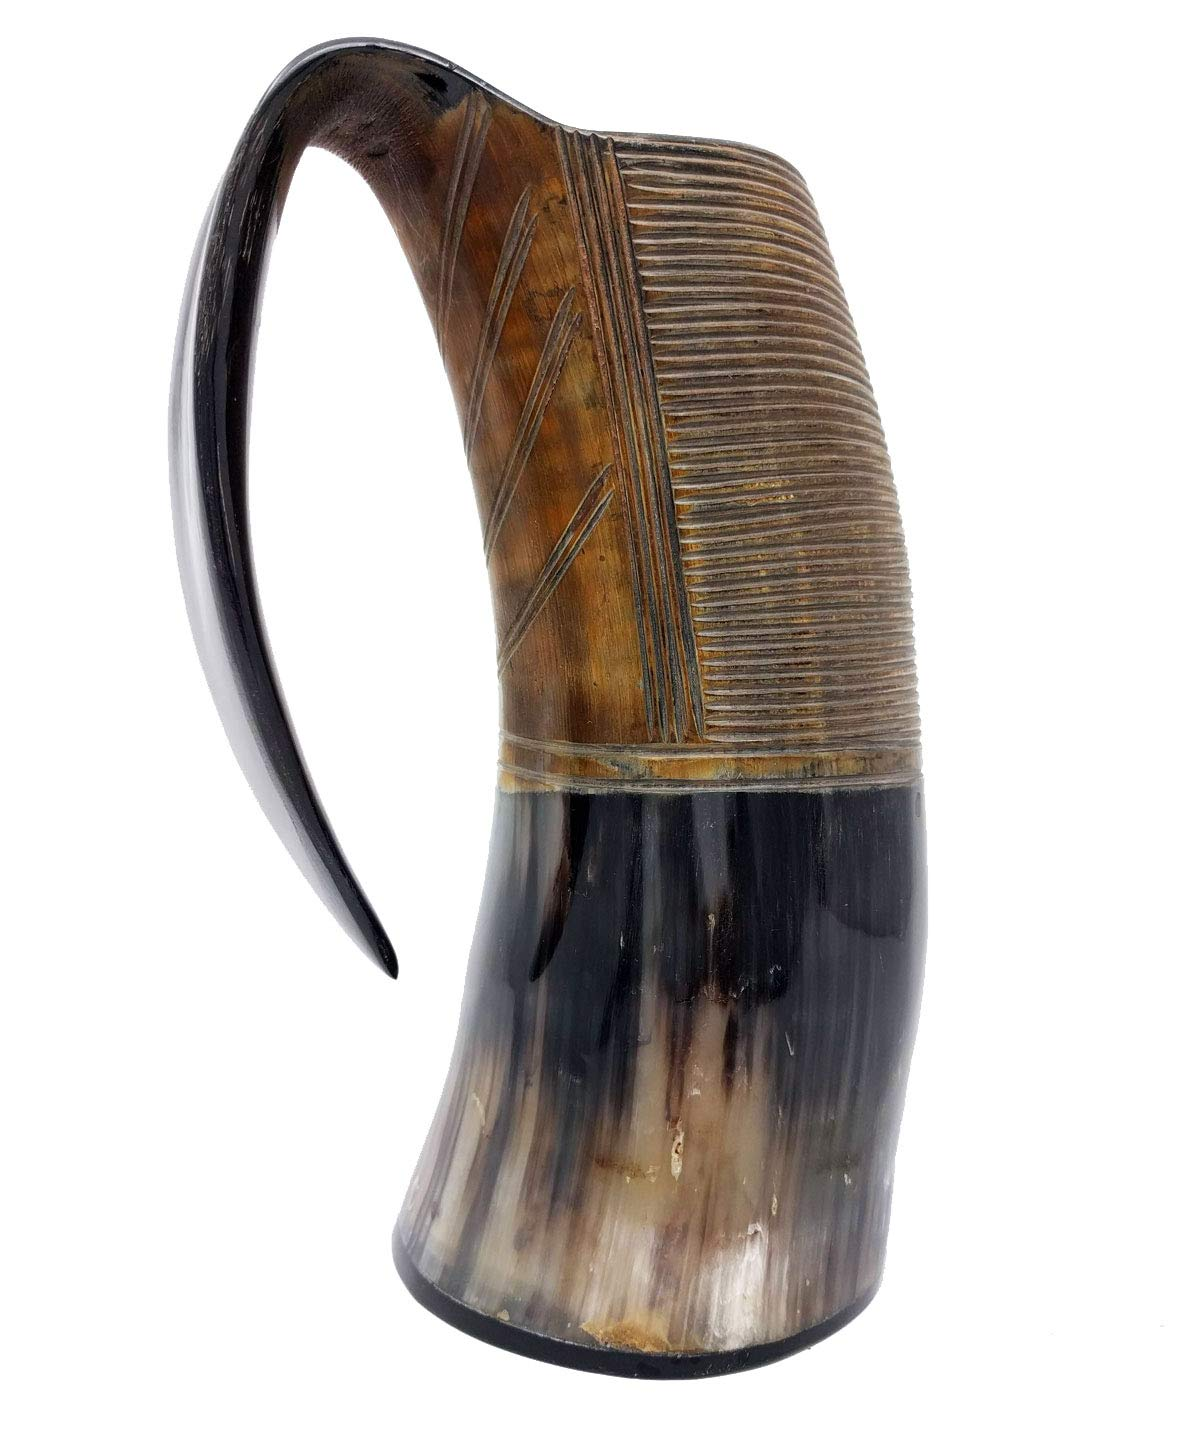 AleHorn – The Original Handcrafted Authentic Viking Drinking Horn Tankard for Beer, Mead, Ale – Medieval Inspired Stein Mug – Food Safe Vessel With Handle (XXL, Burnt) by AleHorn (Image #3)